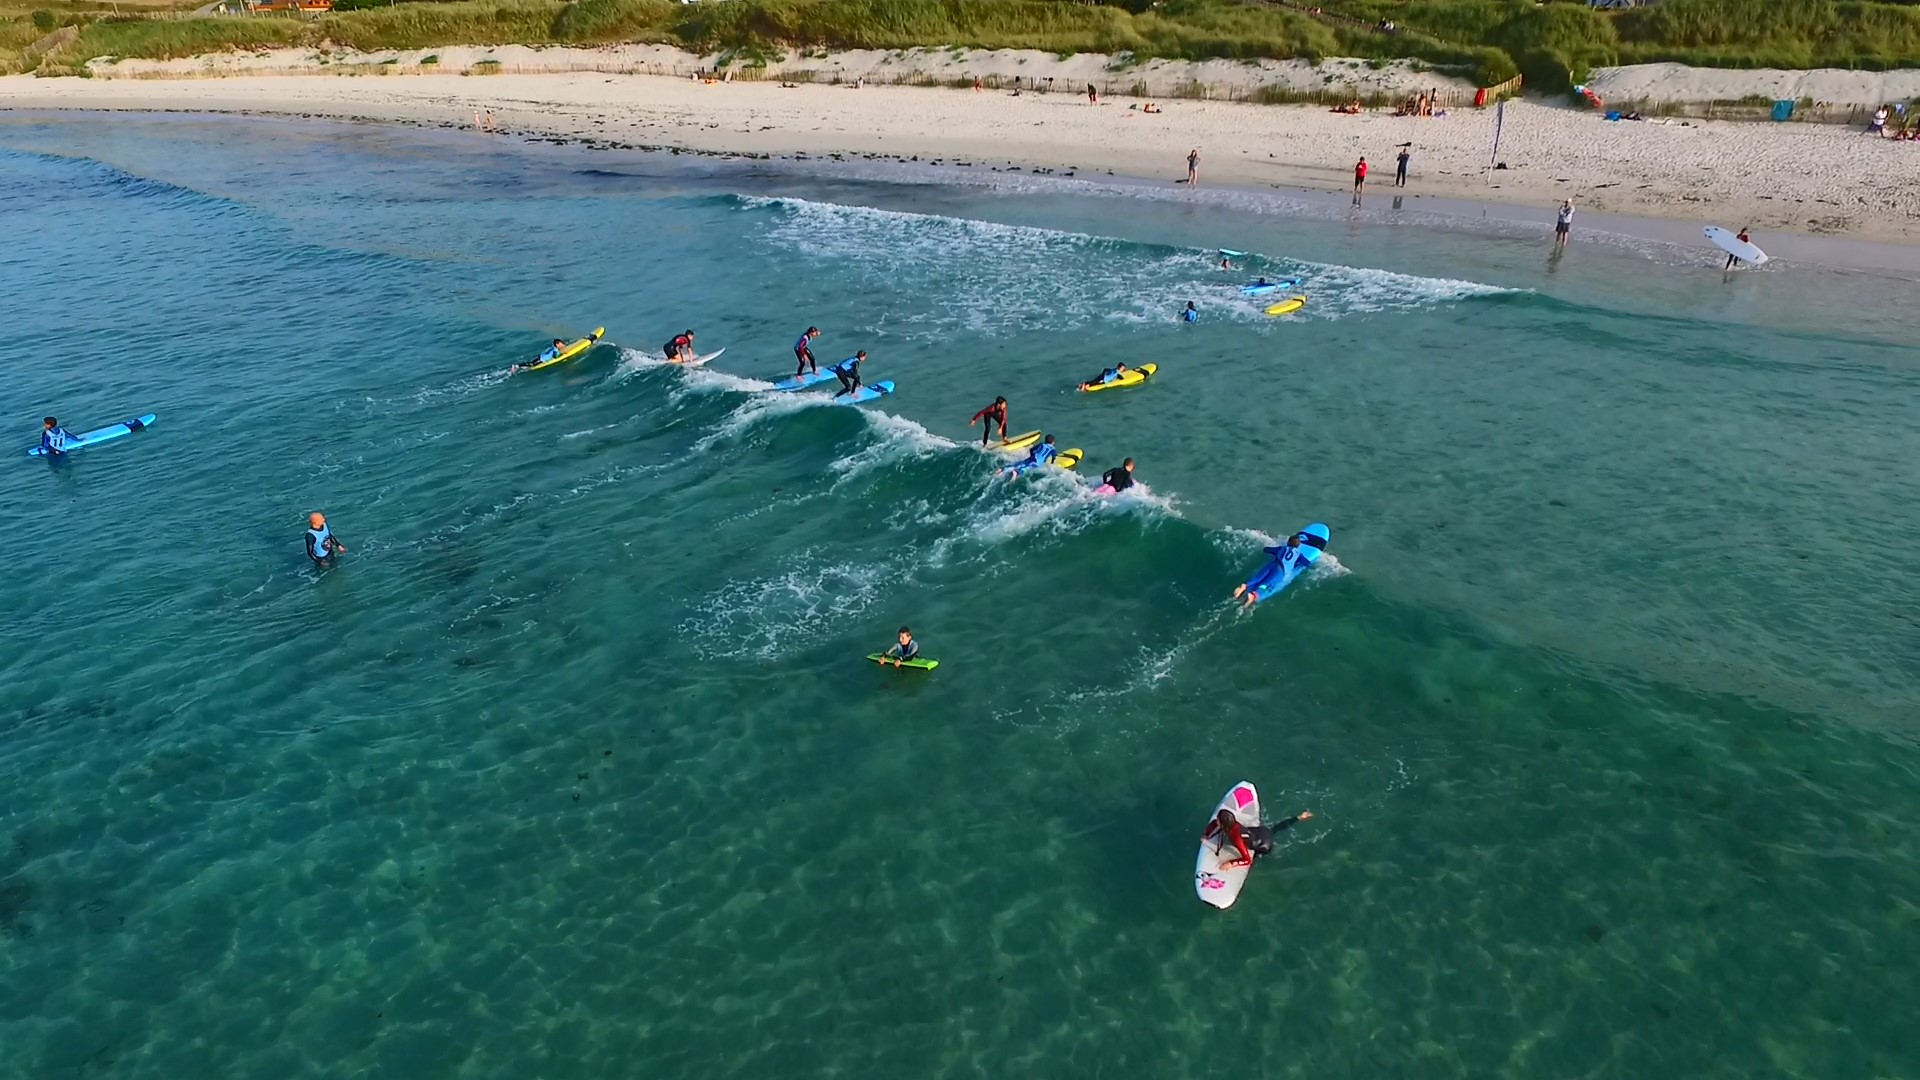 https://www.ligue-bretagne-surf.bzh/wp-content/uploads/2018/01/surf2.MP4_snapshot_00.08_2017.08.25_13.33.48.jpg